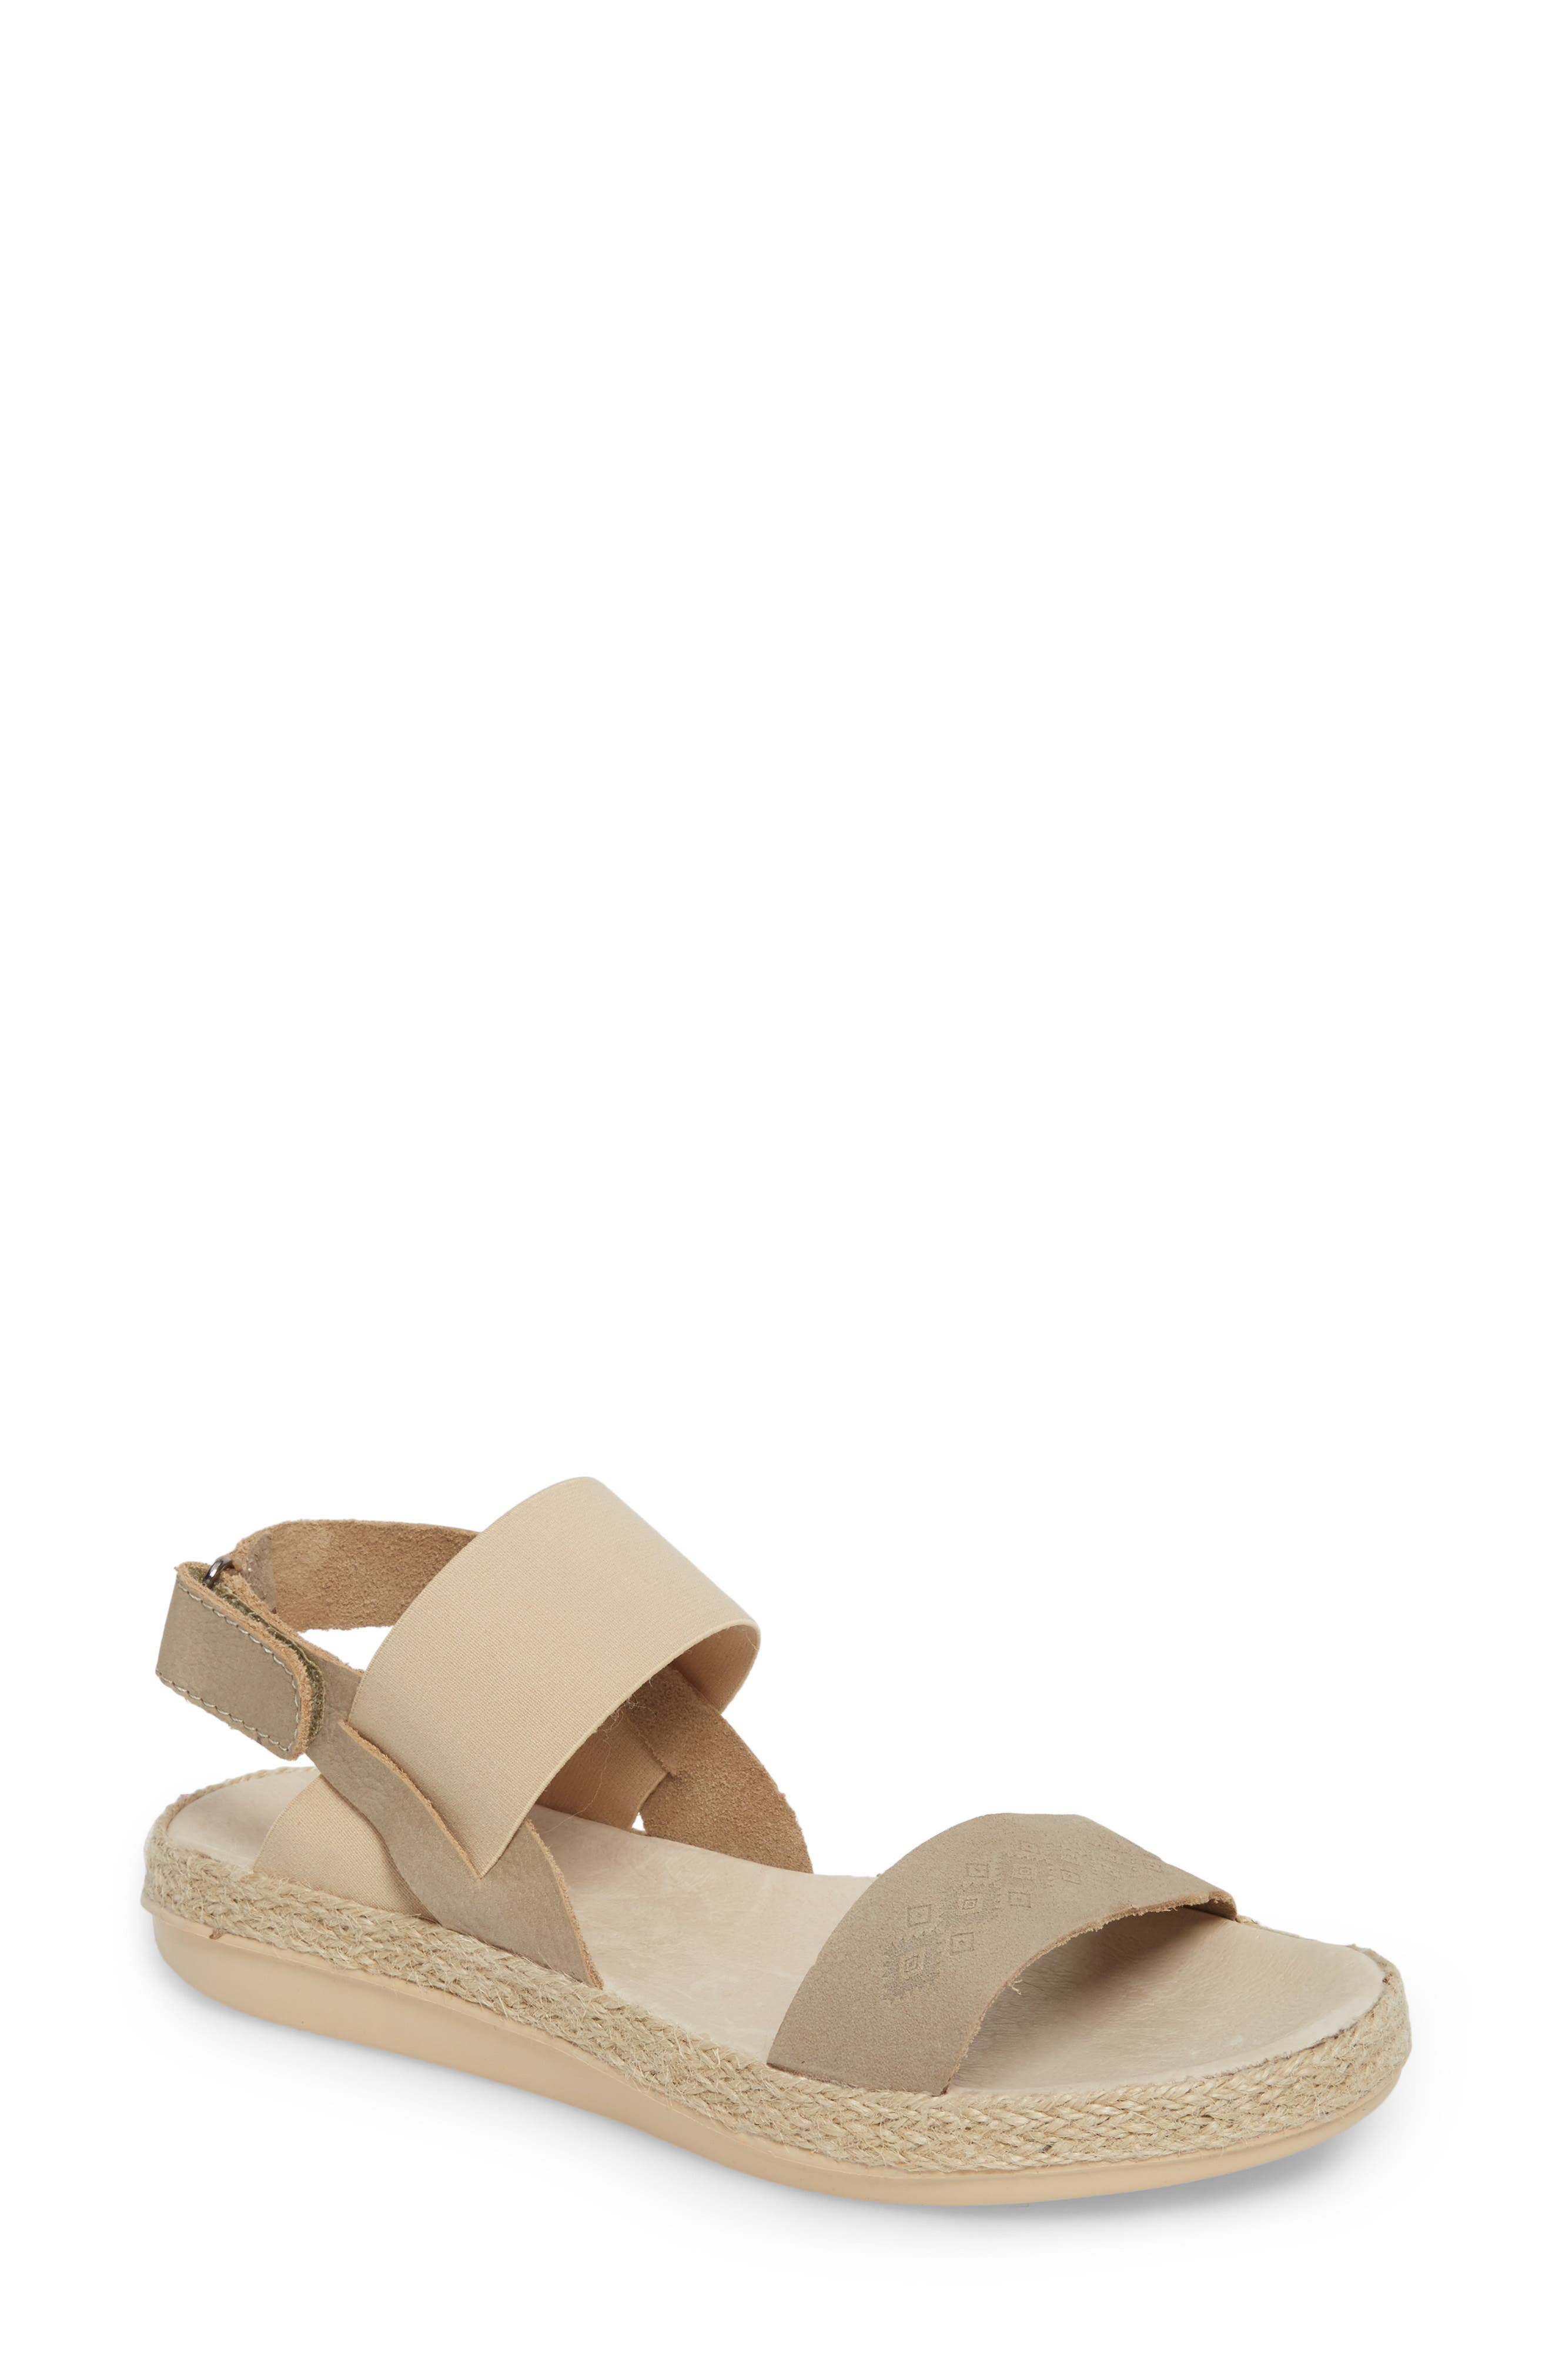 Tobermory Sandal,                         Main,                         color, TAUPE LEATHER